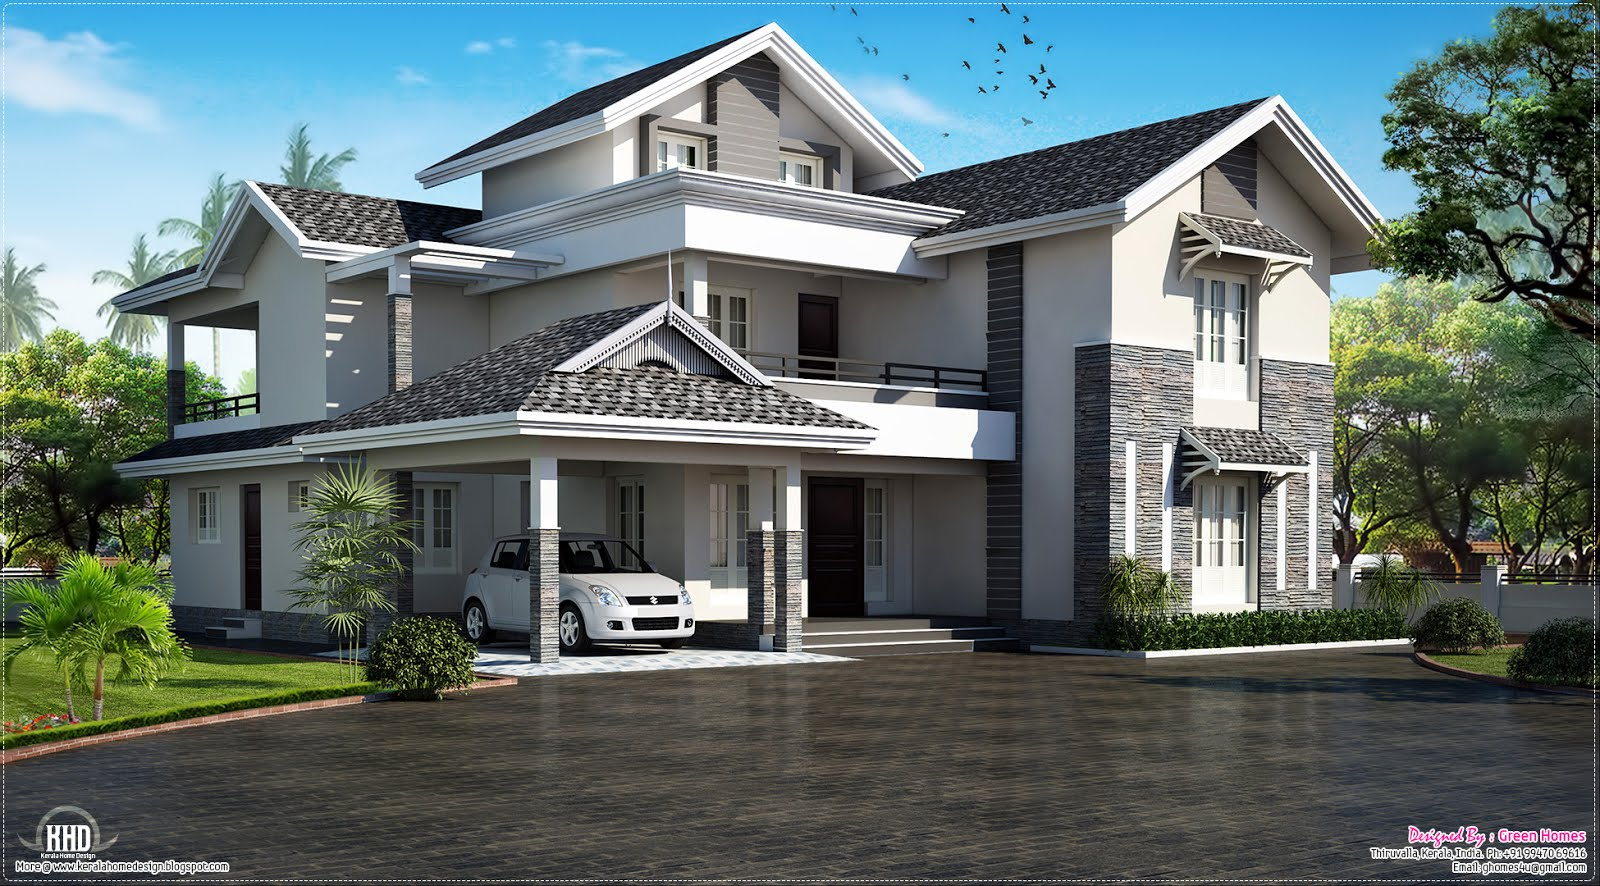 Modern sloping roof house villa design